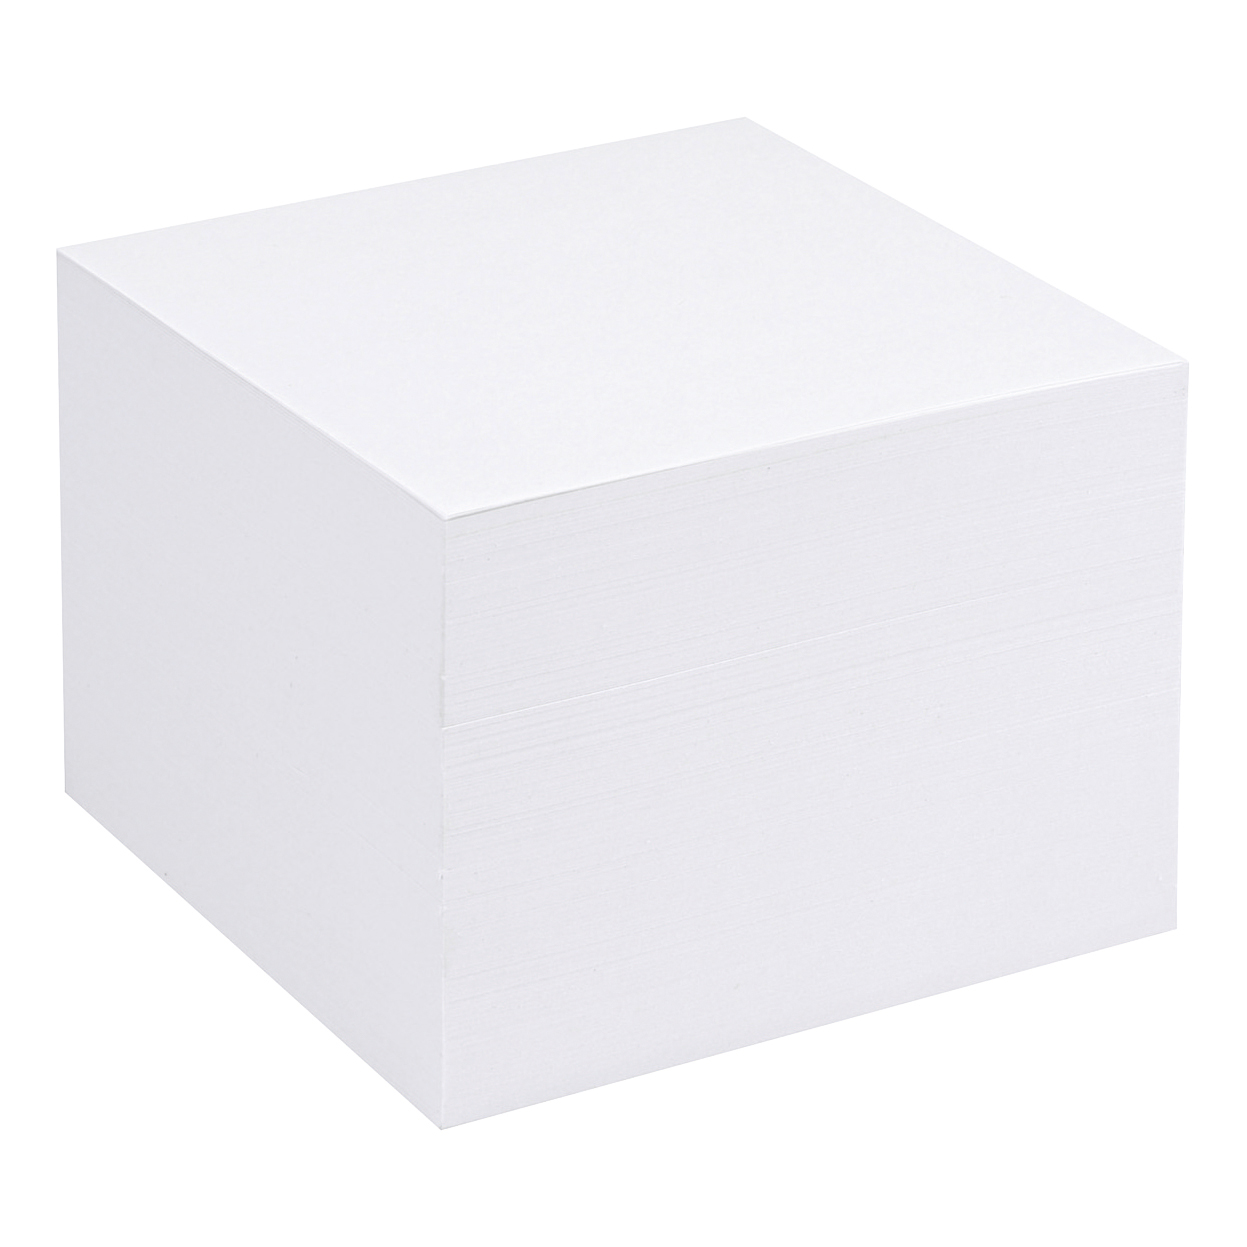 Notepaper Holder & Refills 5 Star Office Refill Block for Noteholder Cube Approx. 750 Sheets of Plain Paper 90x90mm White